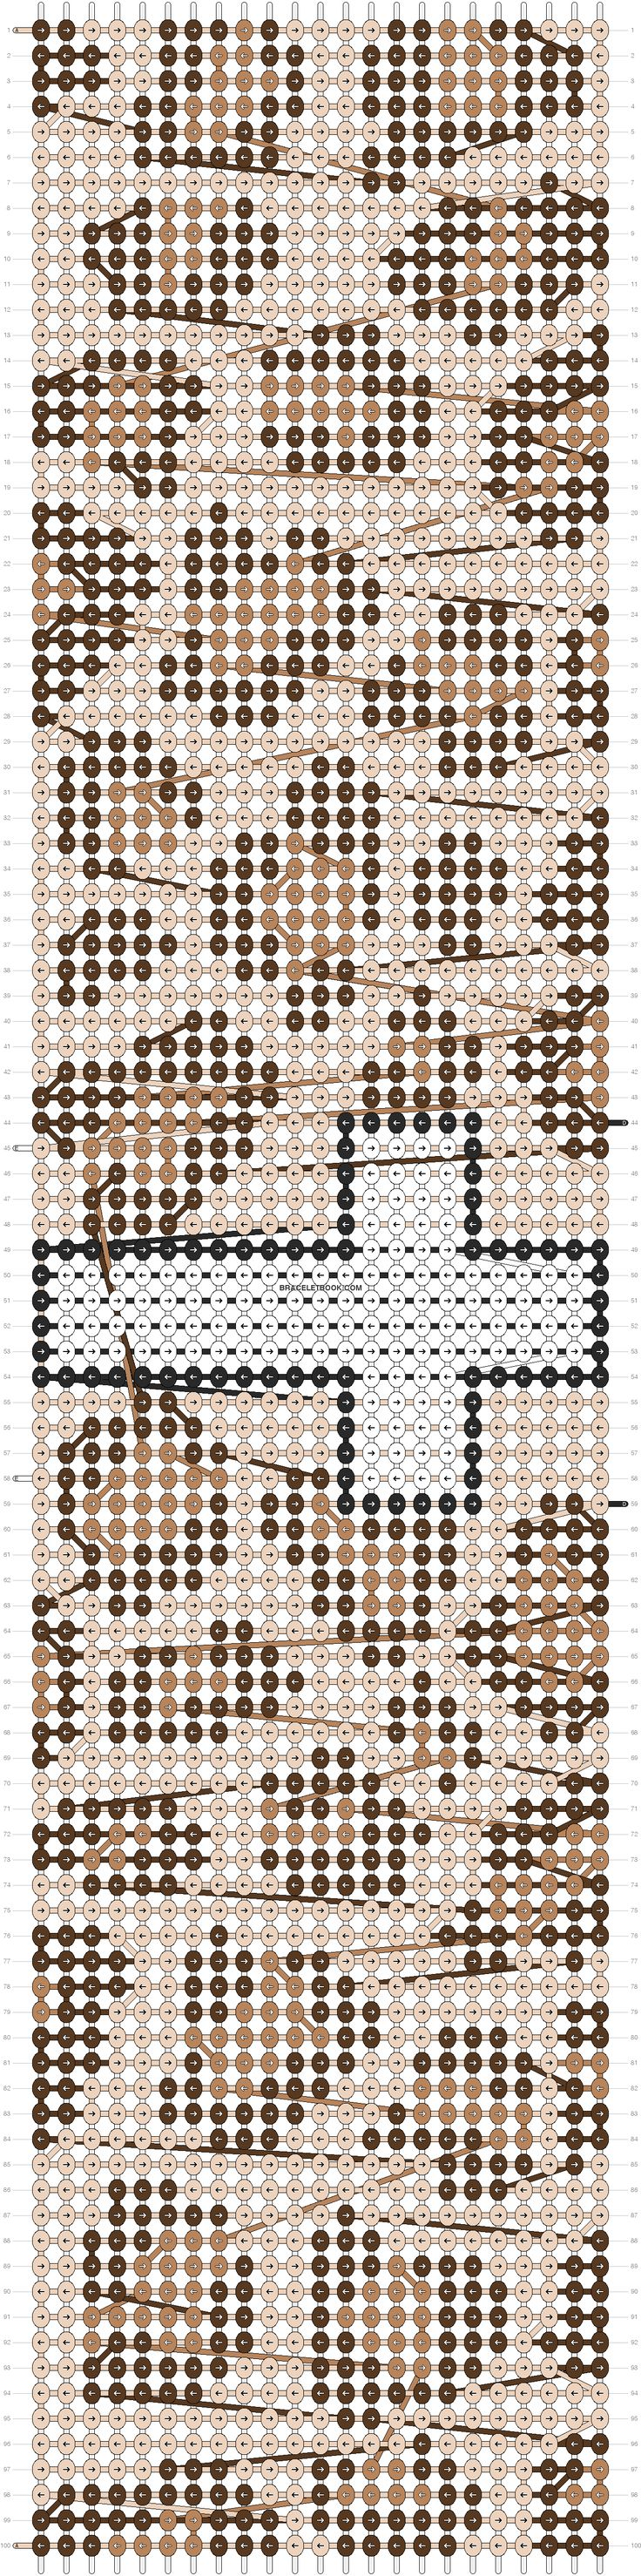 Leopard Print Friendship Bracelet Pattern Number 11282 - For more patterns and tutorials visit our web or the app!